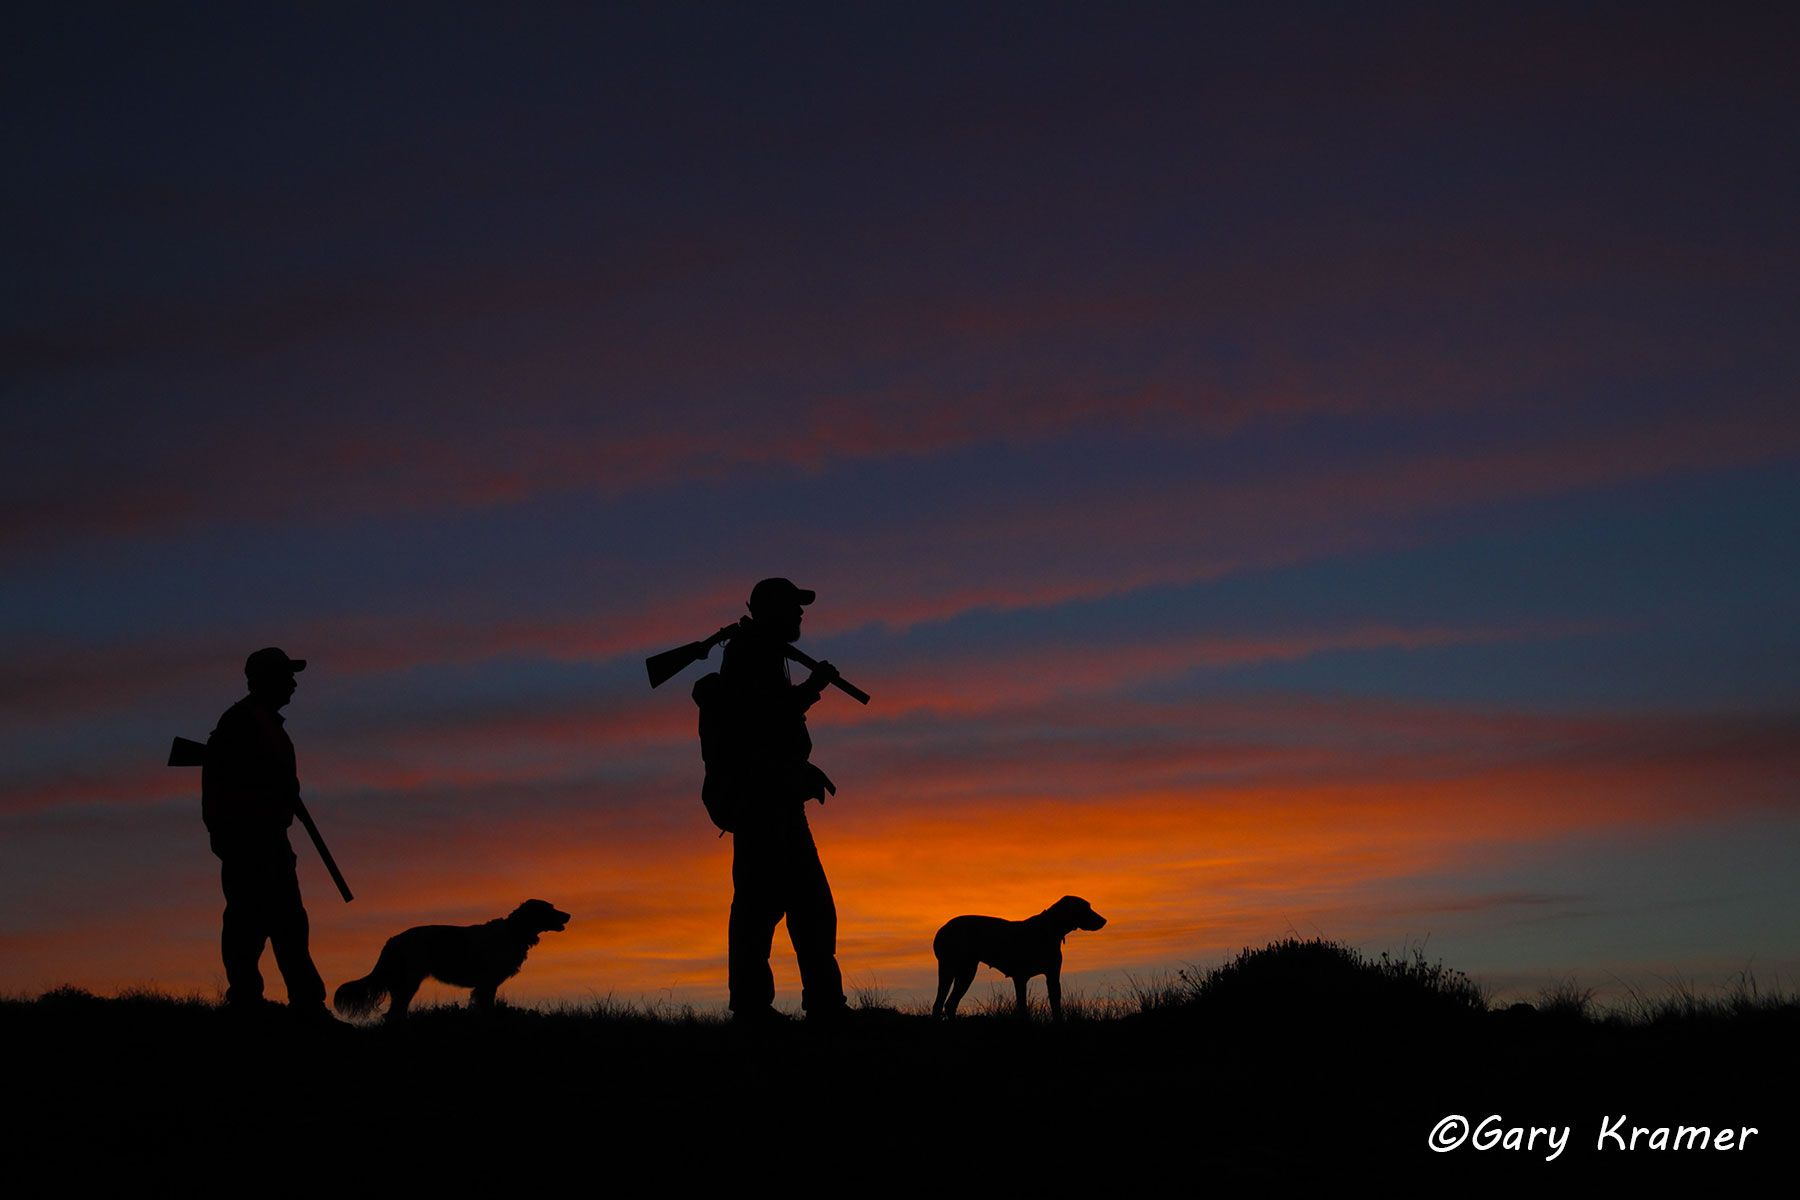 Upland hunter(s) with Setter(s) & Pointer(s) at sunrise/sunset - NHUspx#002d